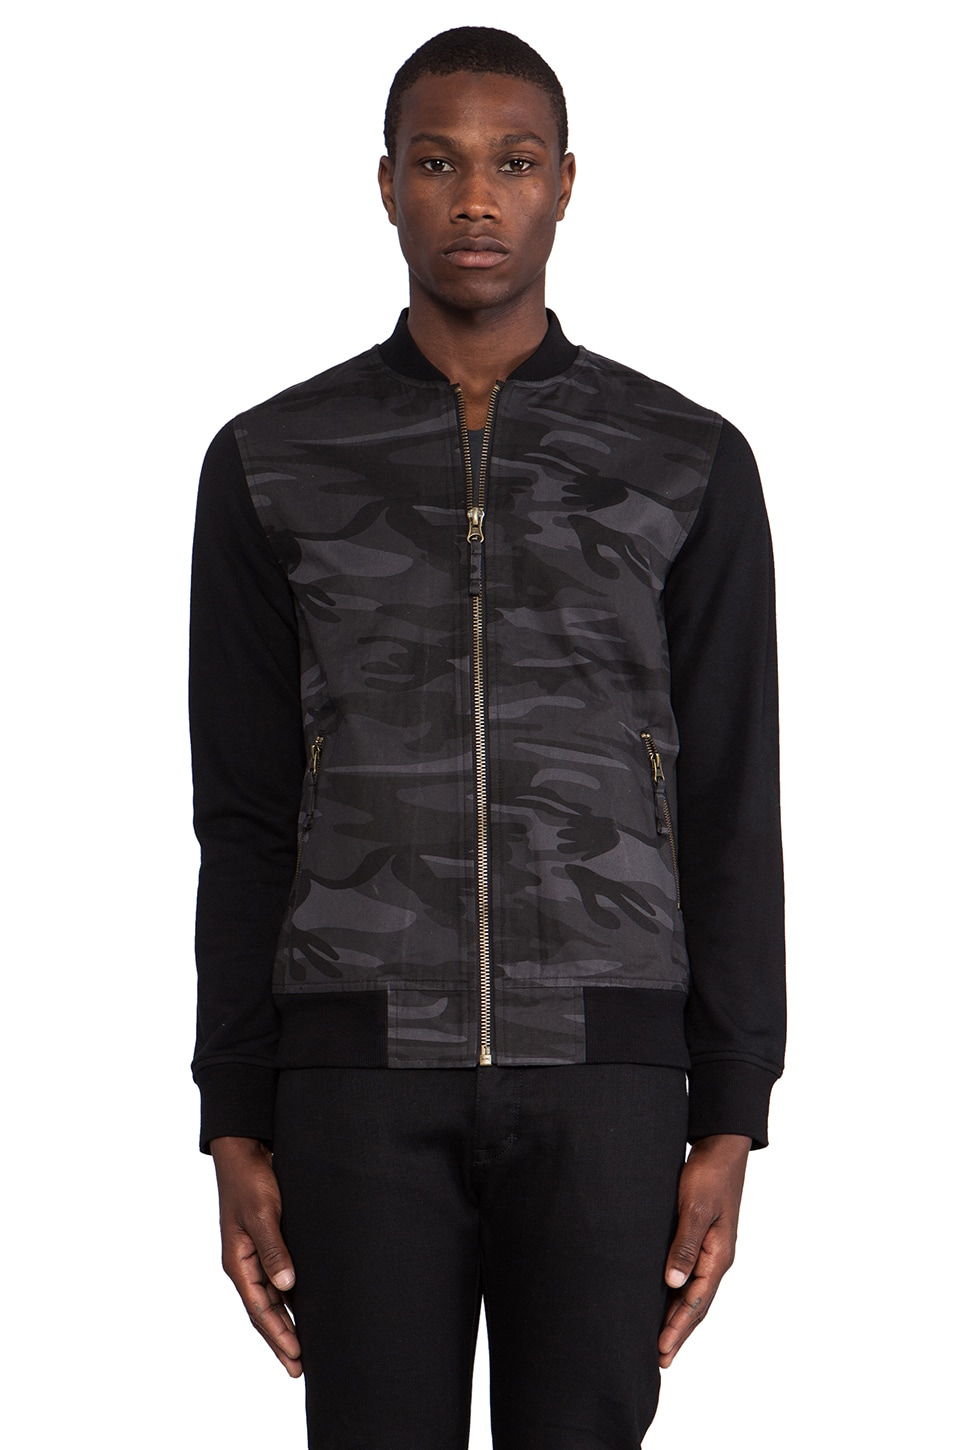 TOVAR Bailey Jacket in Charcoal Camo